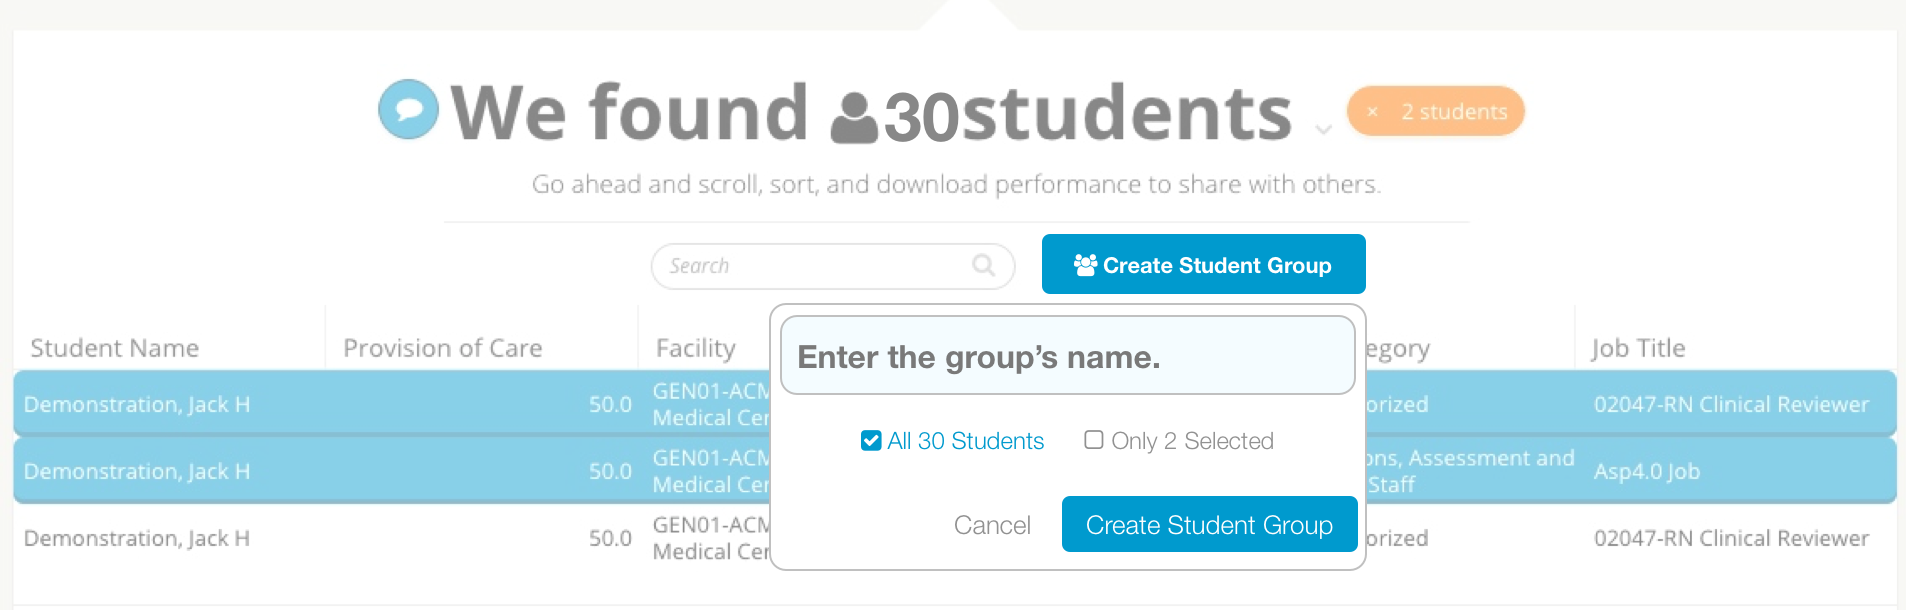 """Embedded actions, like this """"Create Student Group"""" button, makes for a short step between analysis and action."""